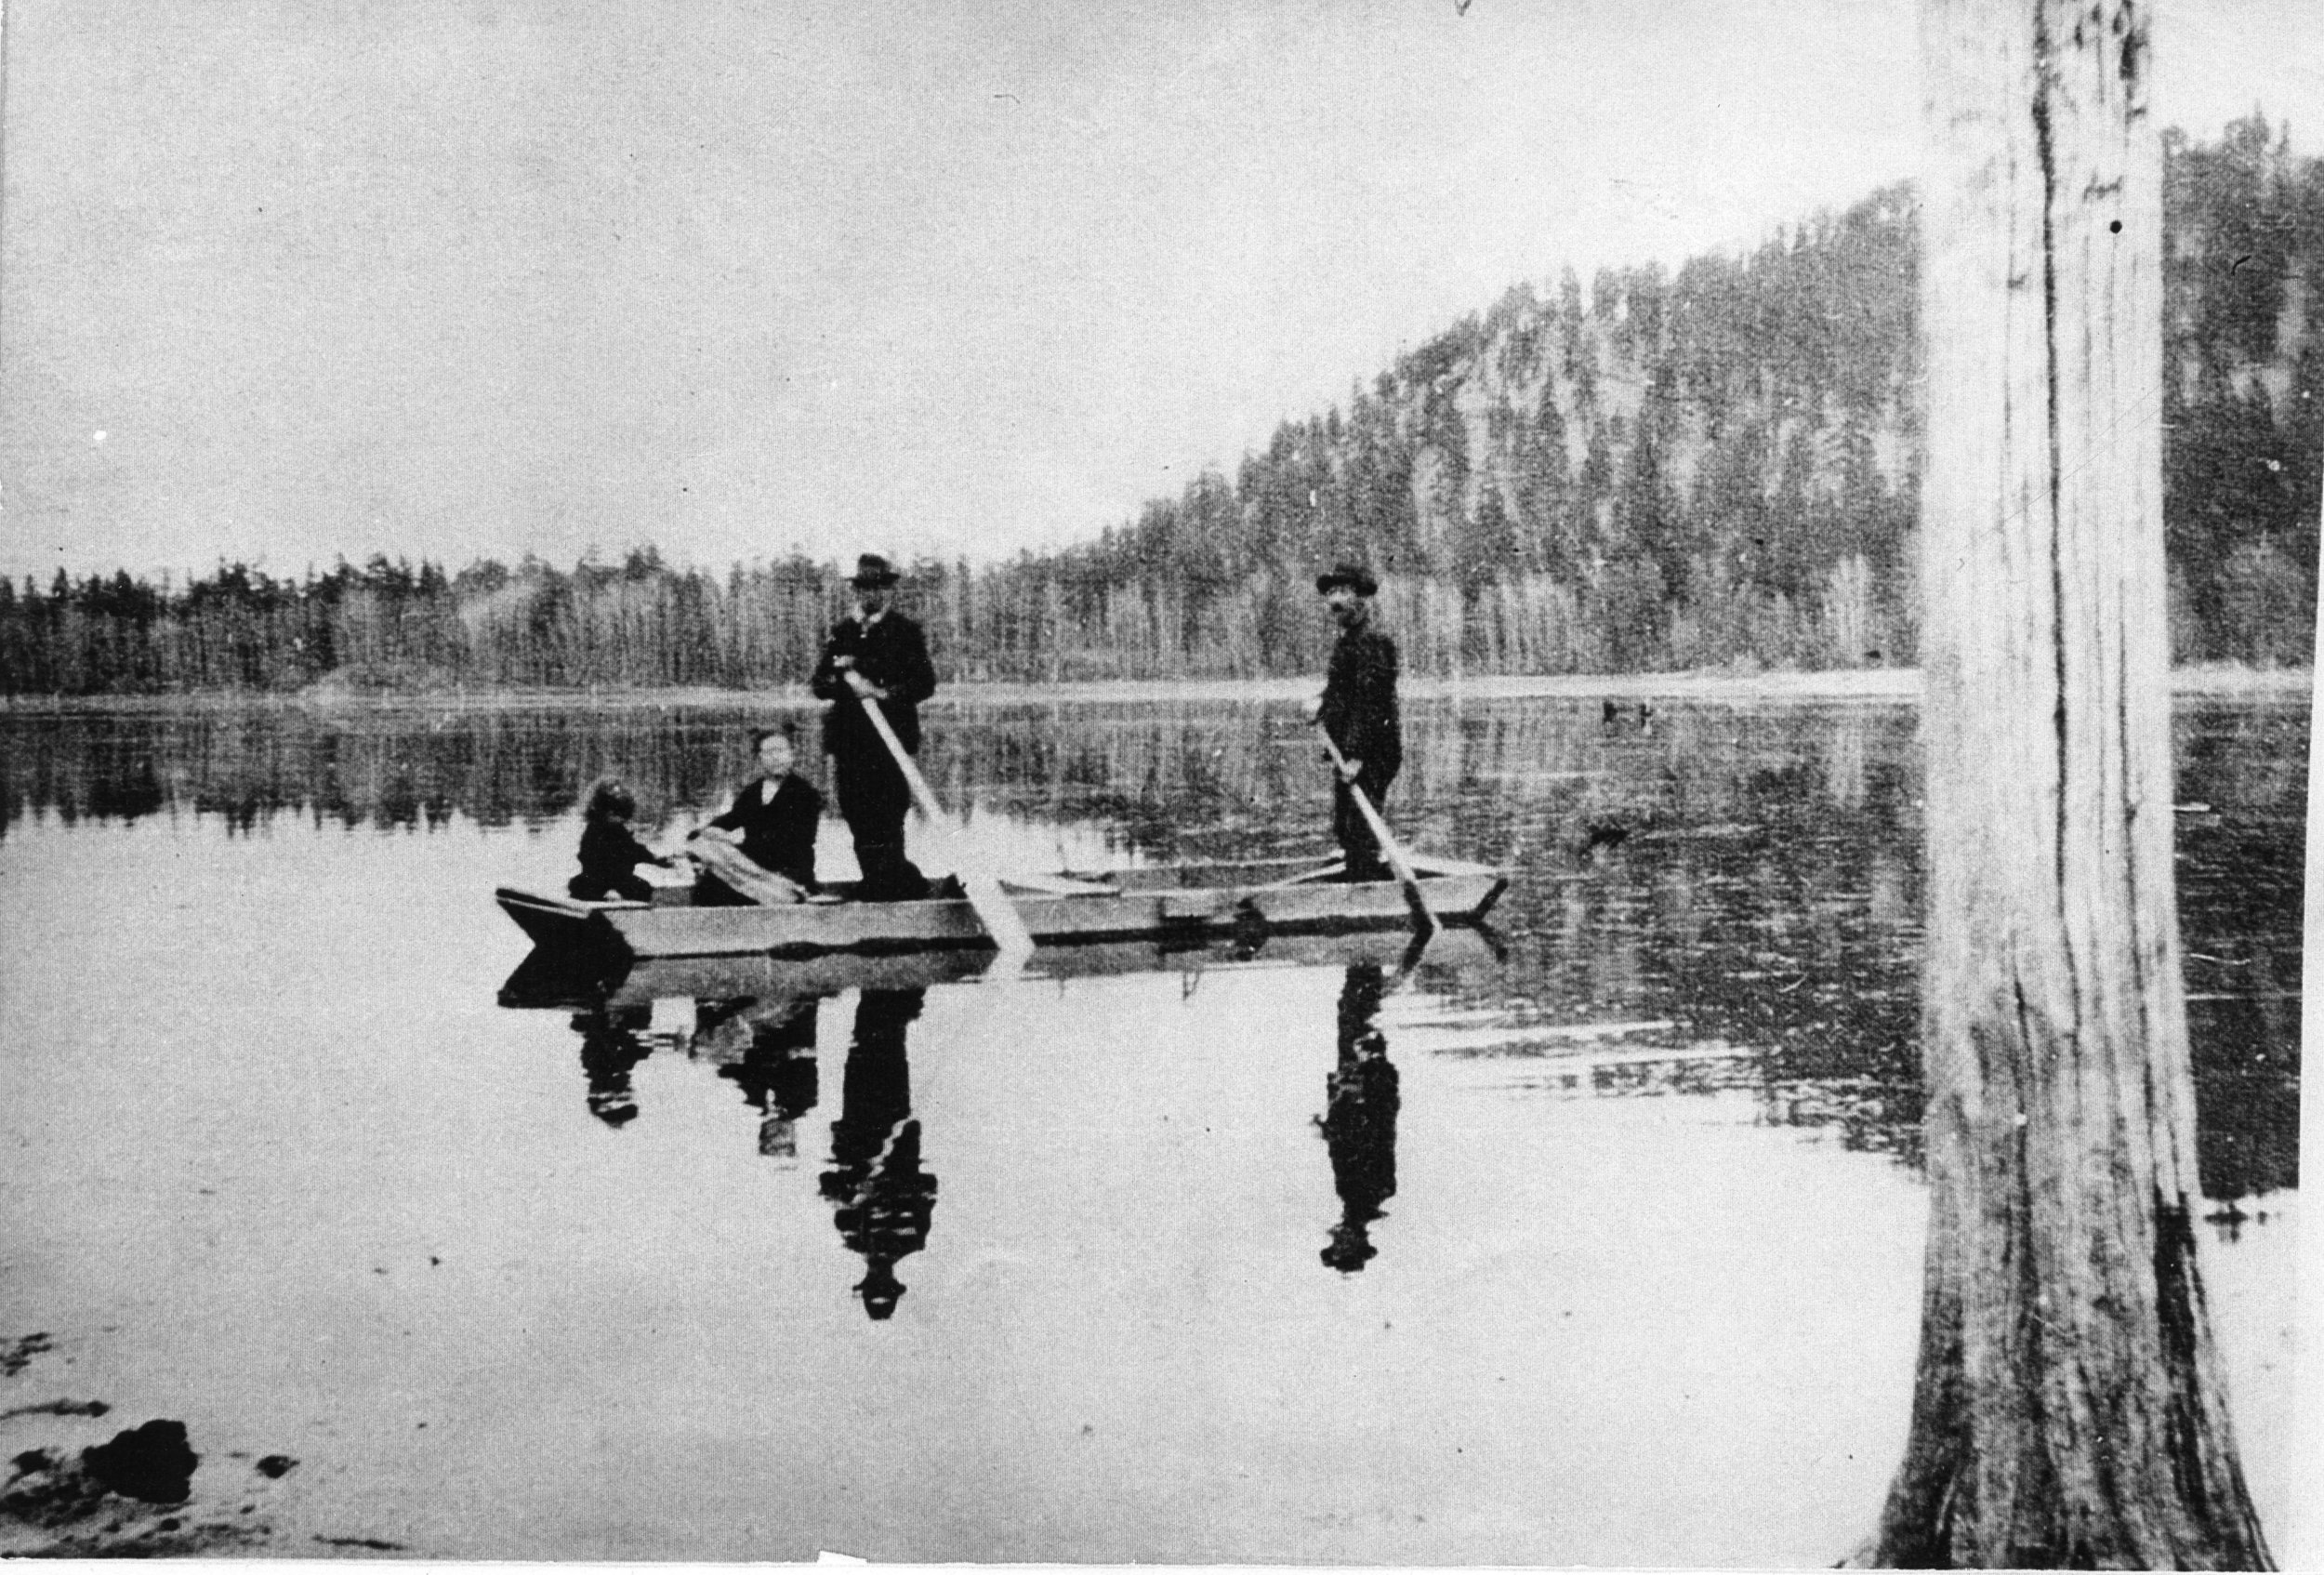 Left to right: Linnie Munro (Hale), Mrs. Findlay Munro, Findlay Munro, and Philip Munro paddling a flat bottom boat on Fish Lake.